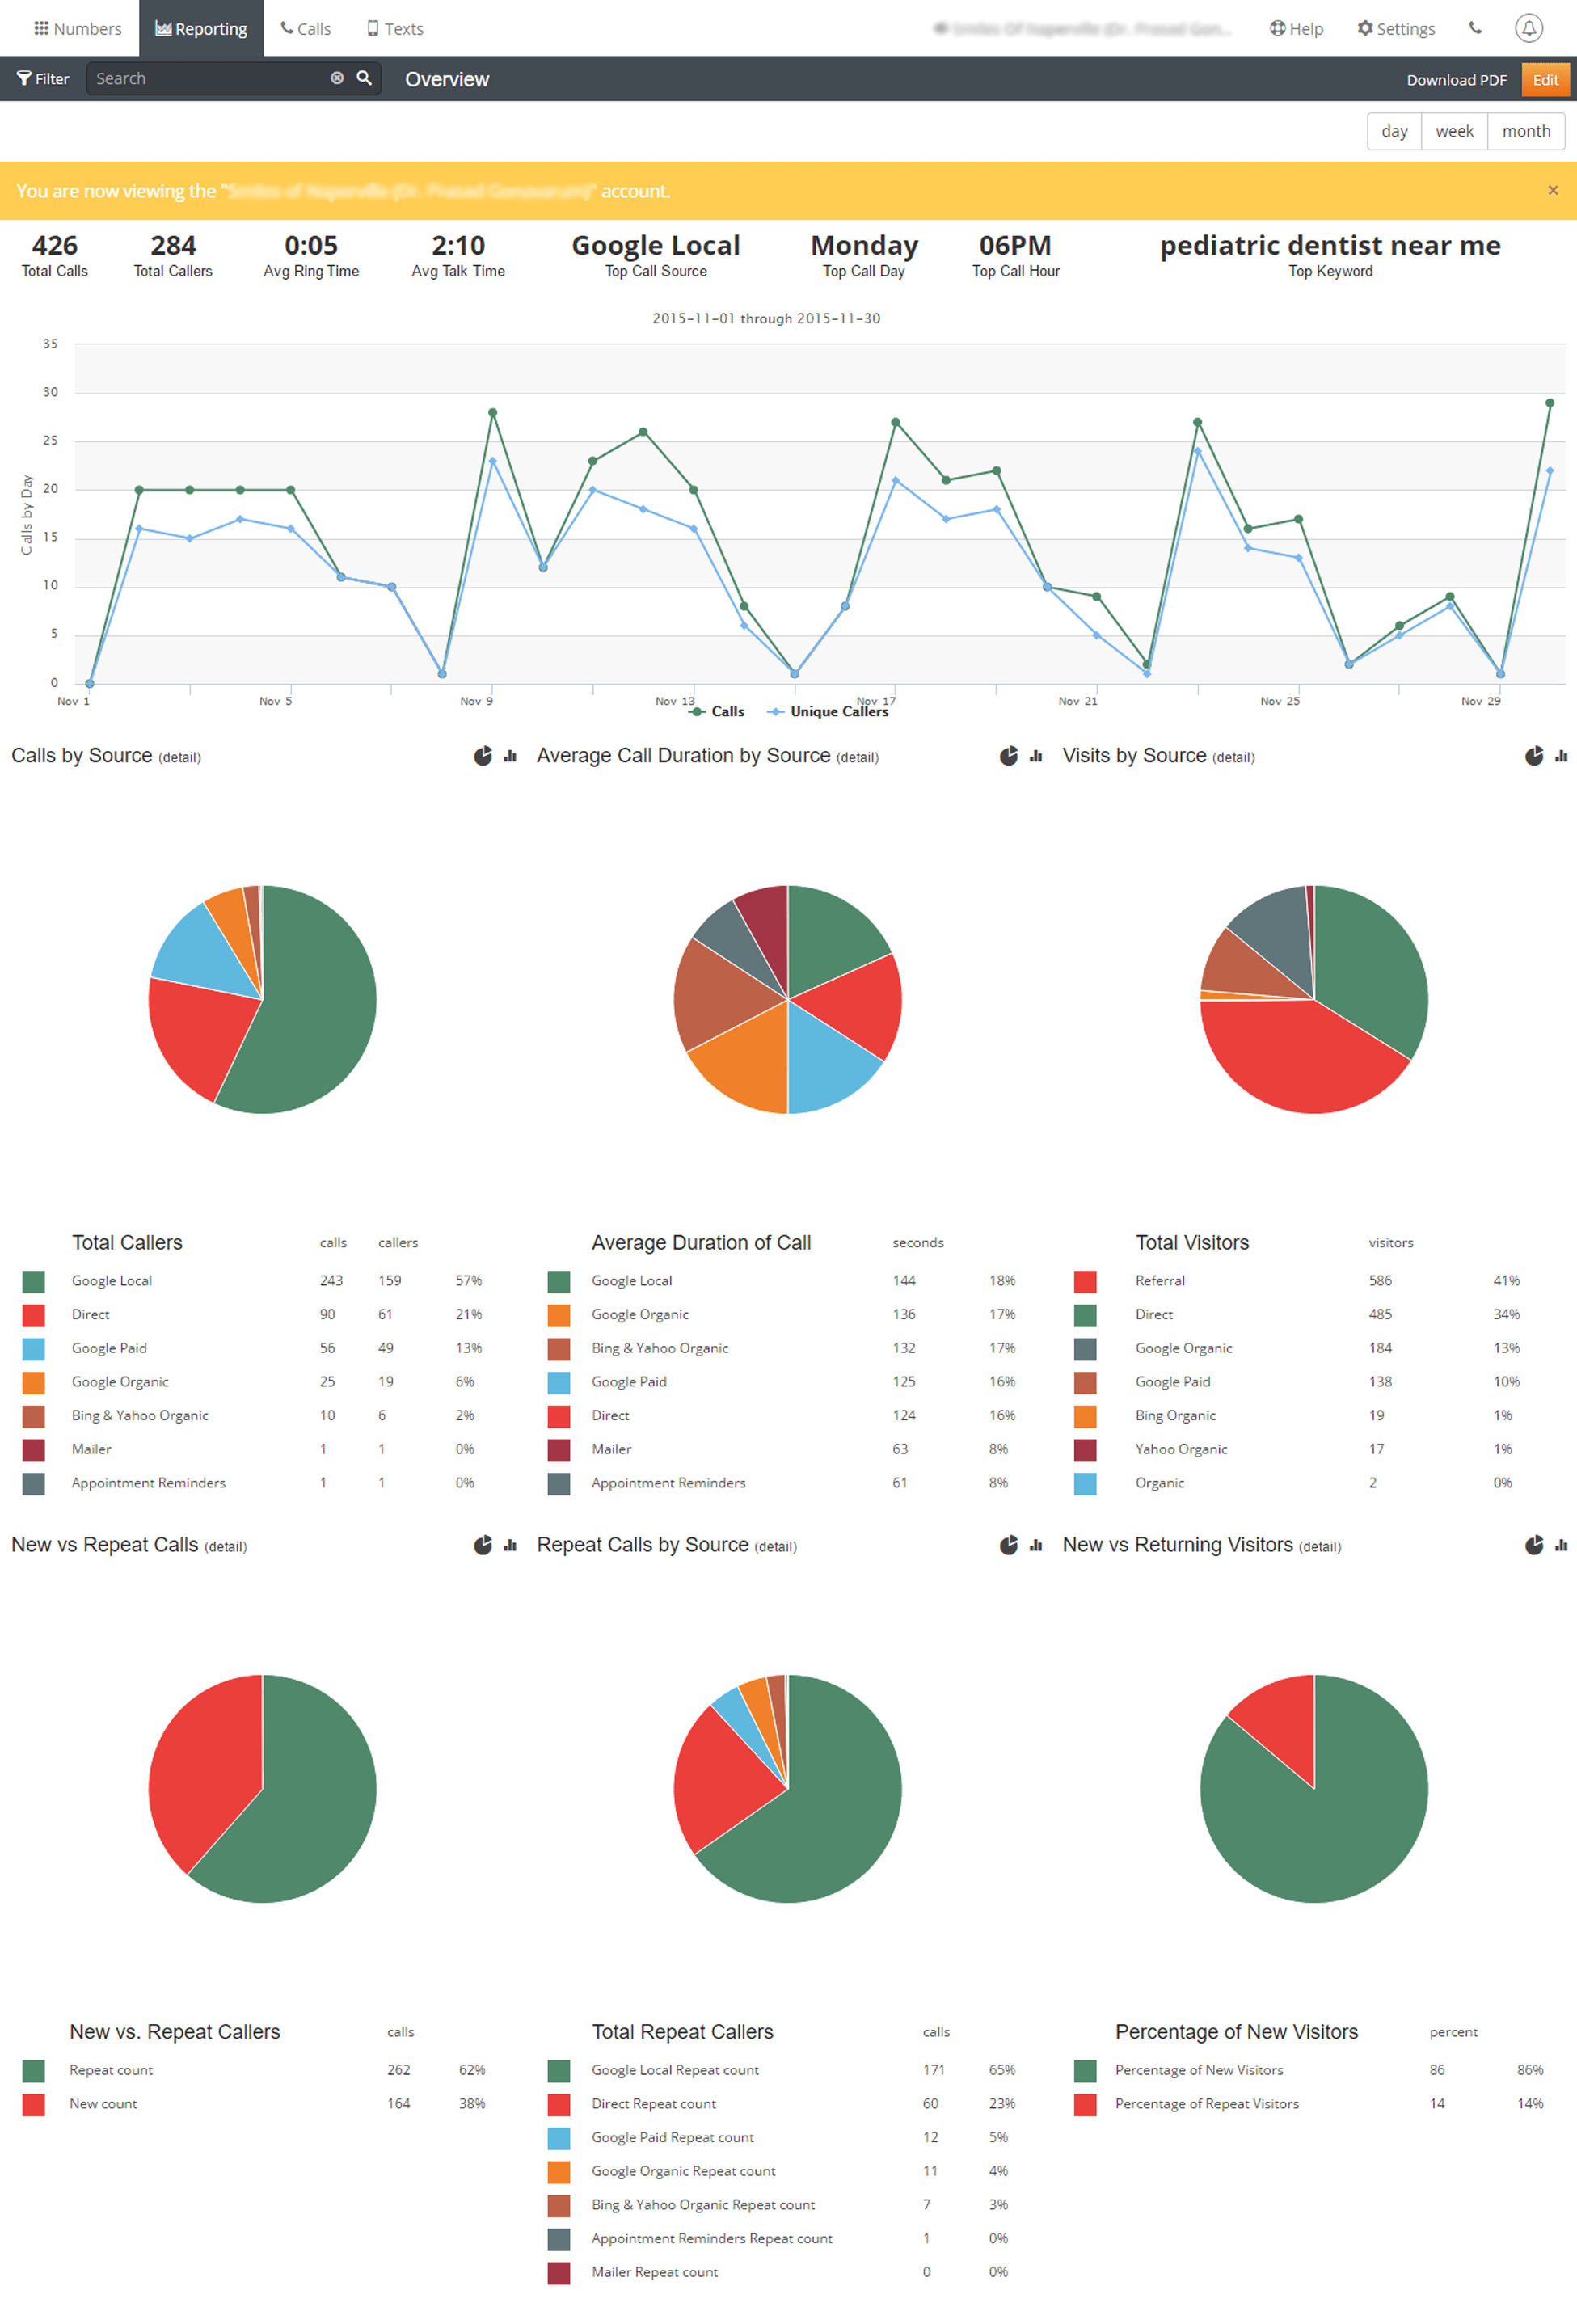 call-overview-report